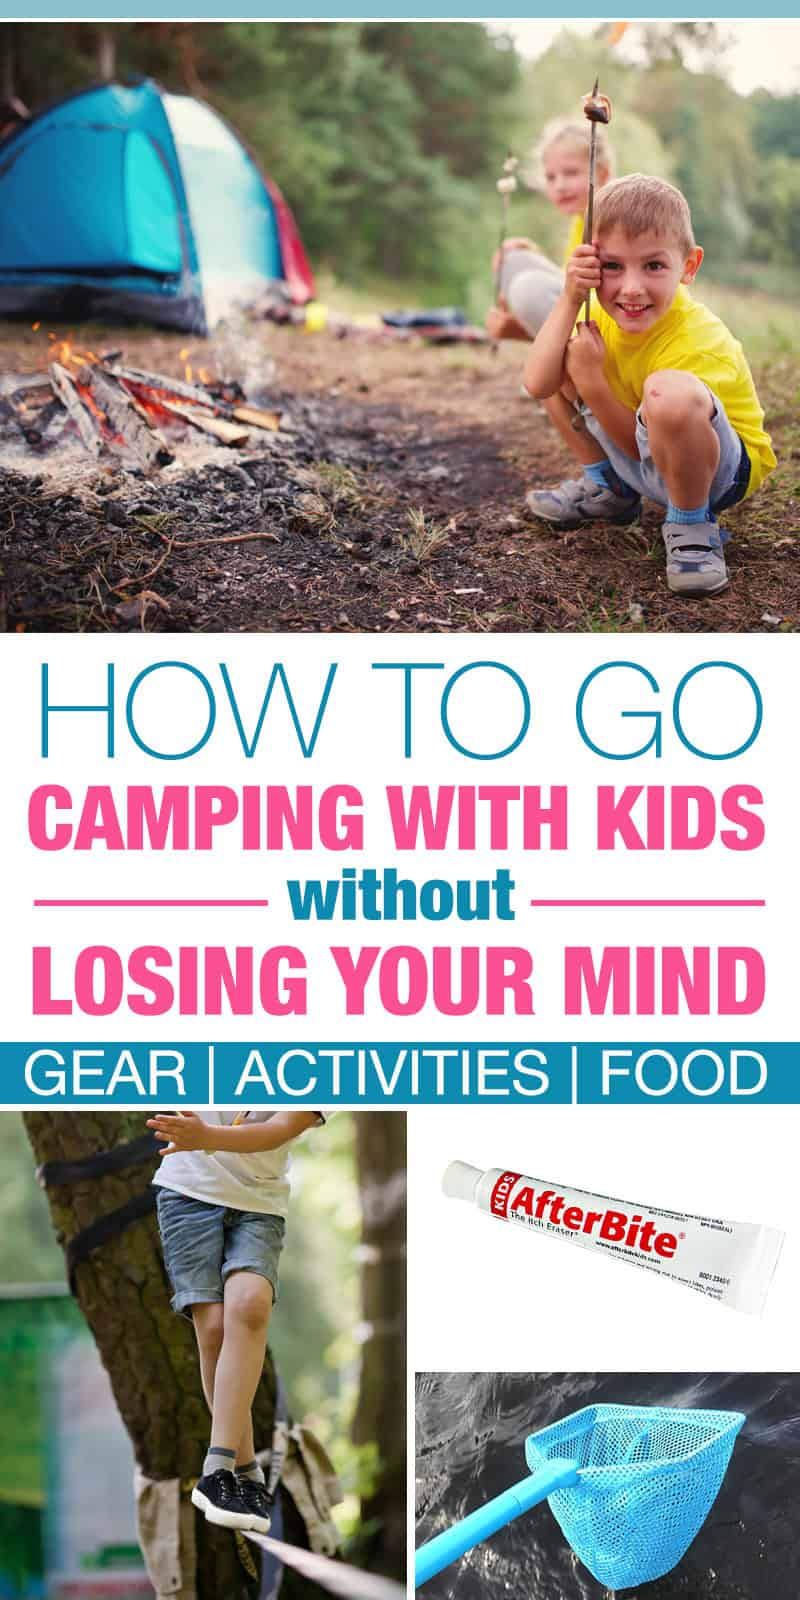 We do most of the things on this list and our kids love to go camping. It's not as hard as it seems as long as you bring plenty of things to do.